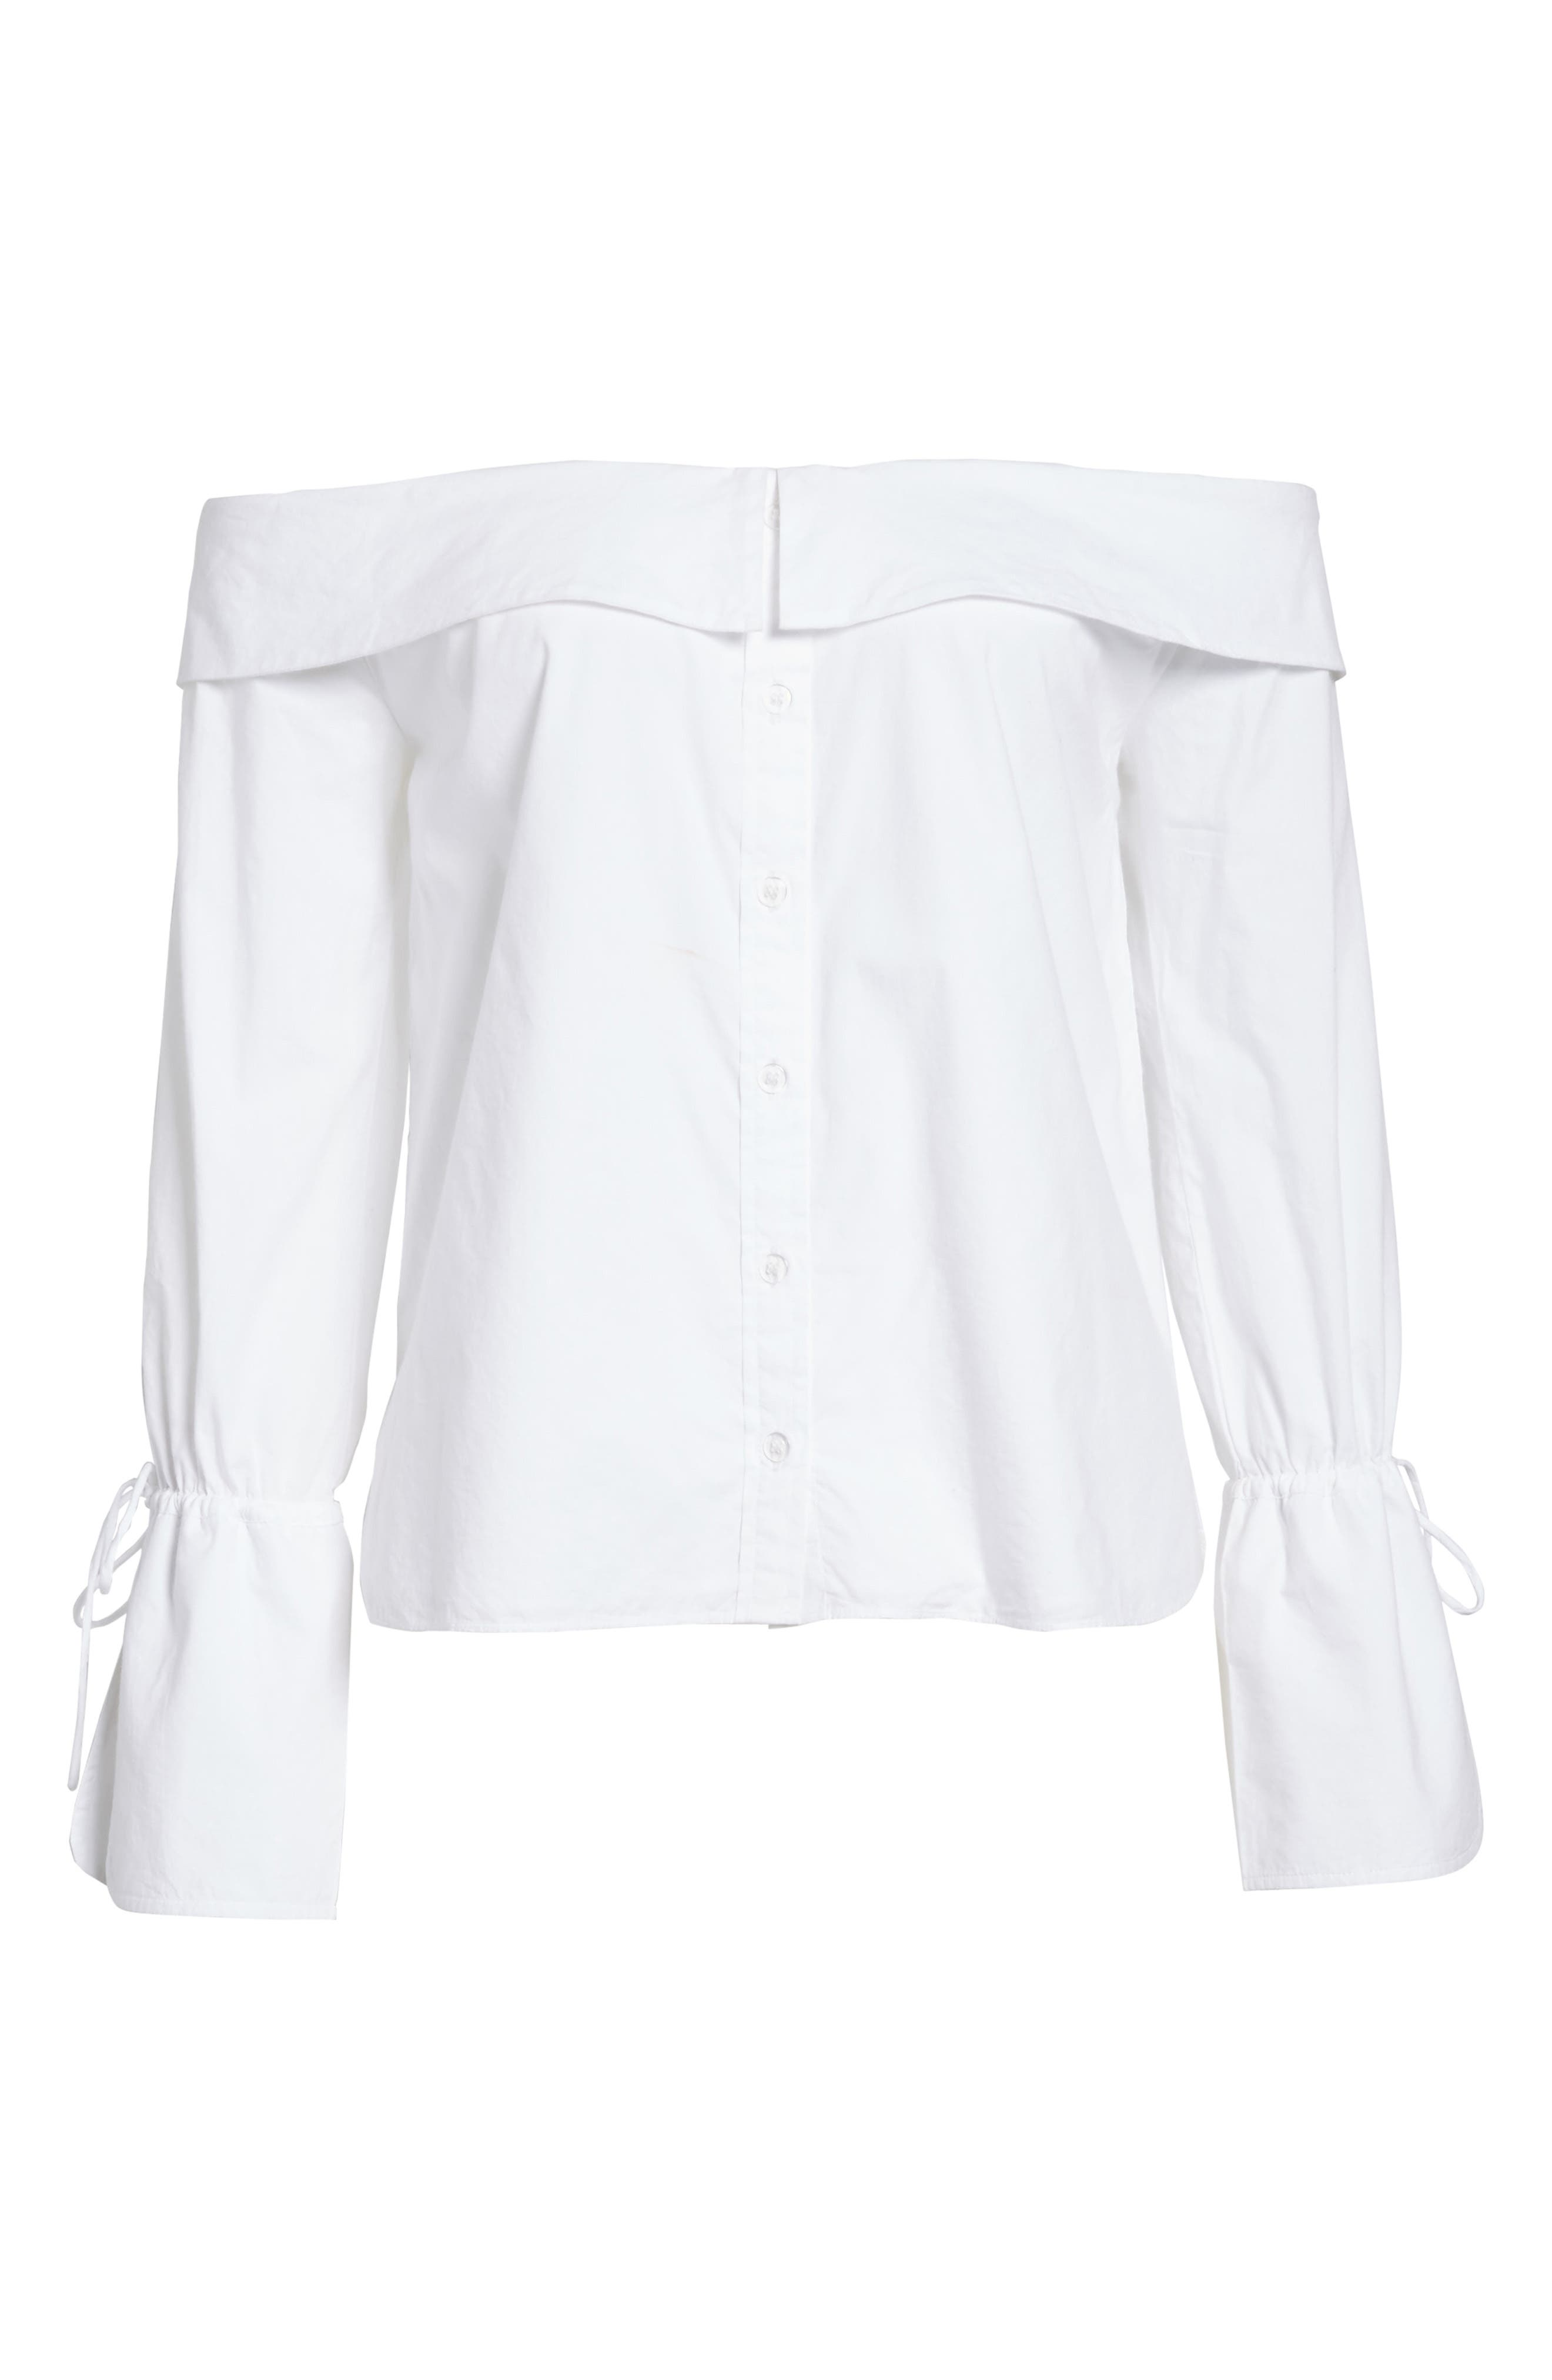 L'Academie Aria Off the Shoulder Blouse,                             Alternate thumbnail 6, color,                             100